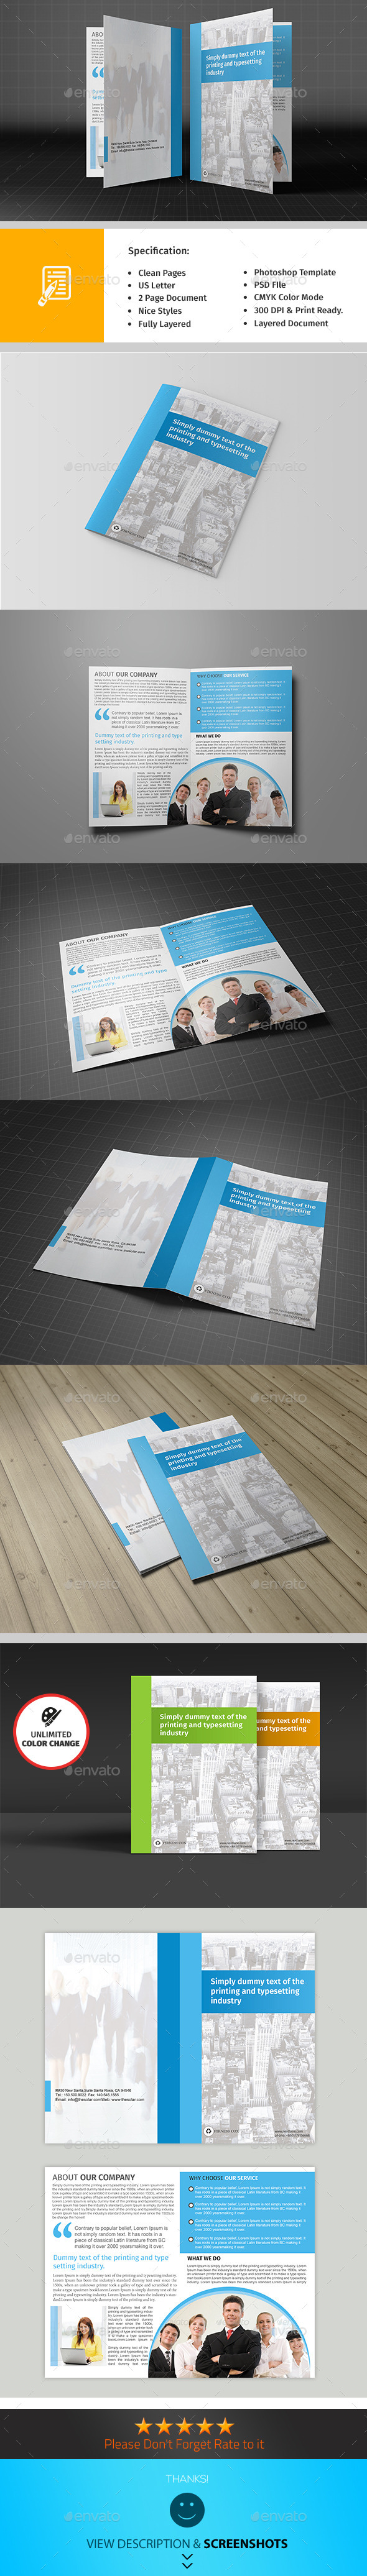 GraphicRiver Bifold Brochure Template 9571297